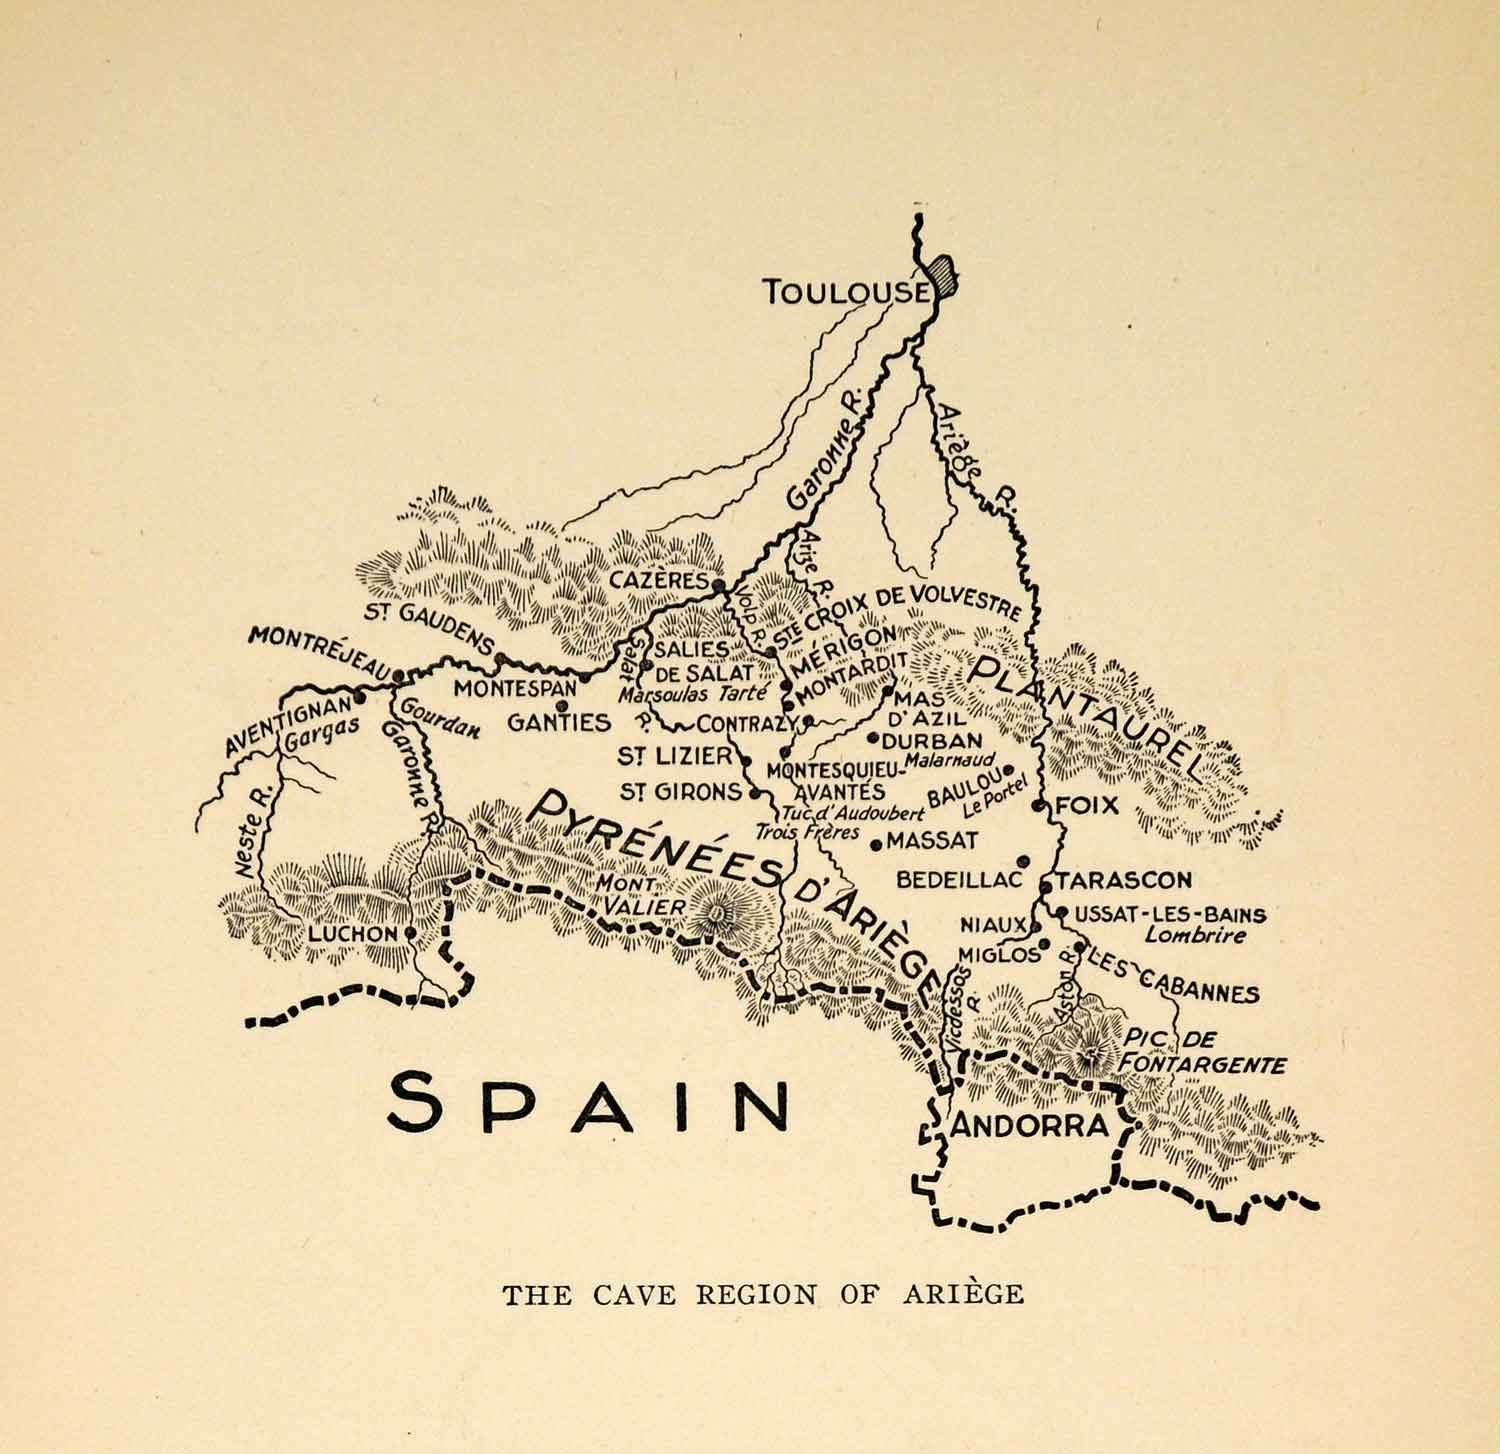 Map Of Spain France And Andorra.1927 Print Map Spain France Ariege Pyrenees Andorra Toulouse Cave Xgx3